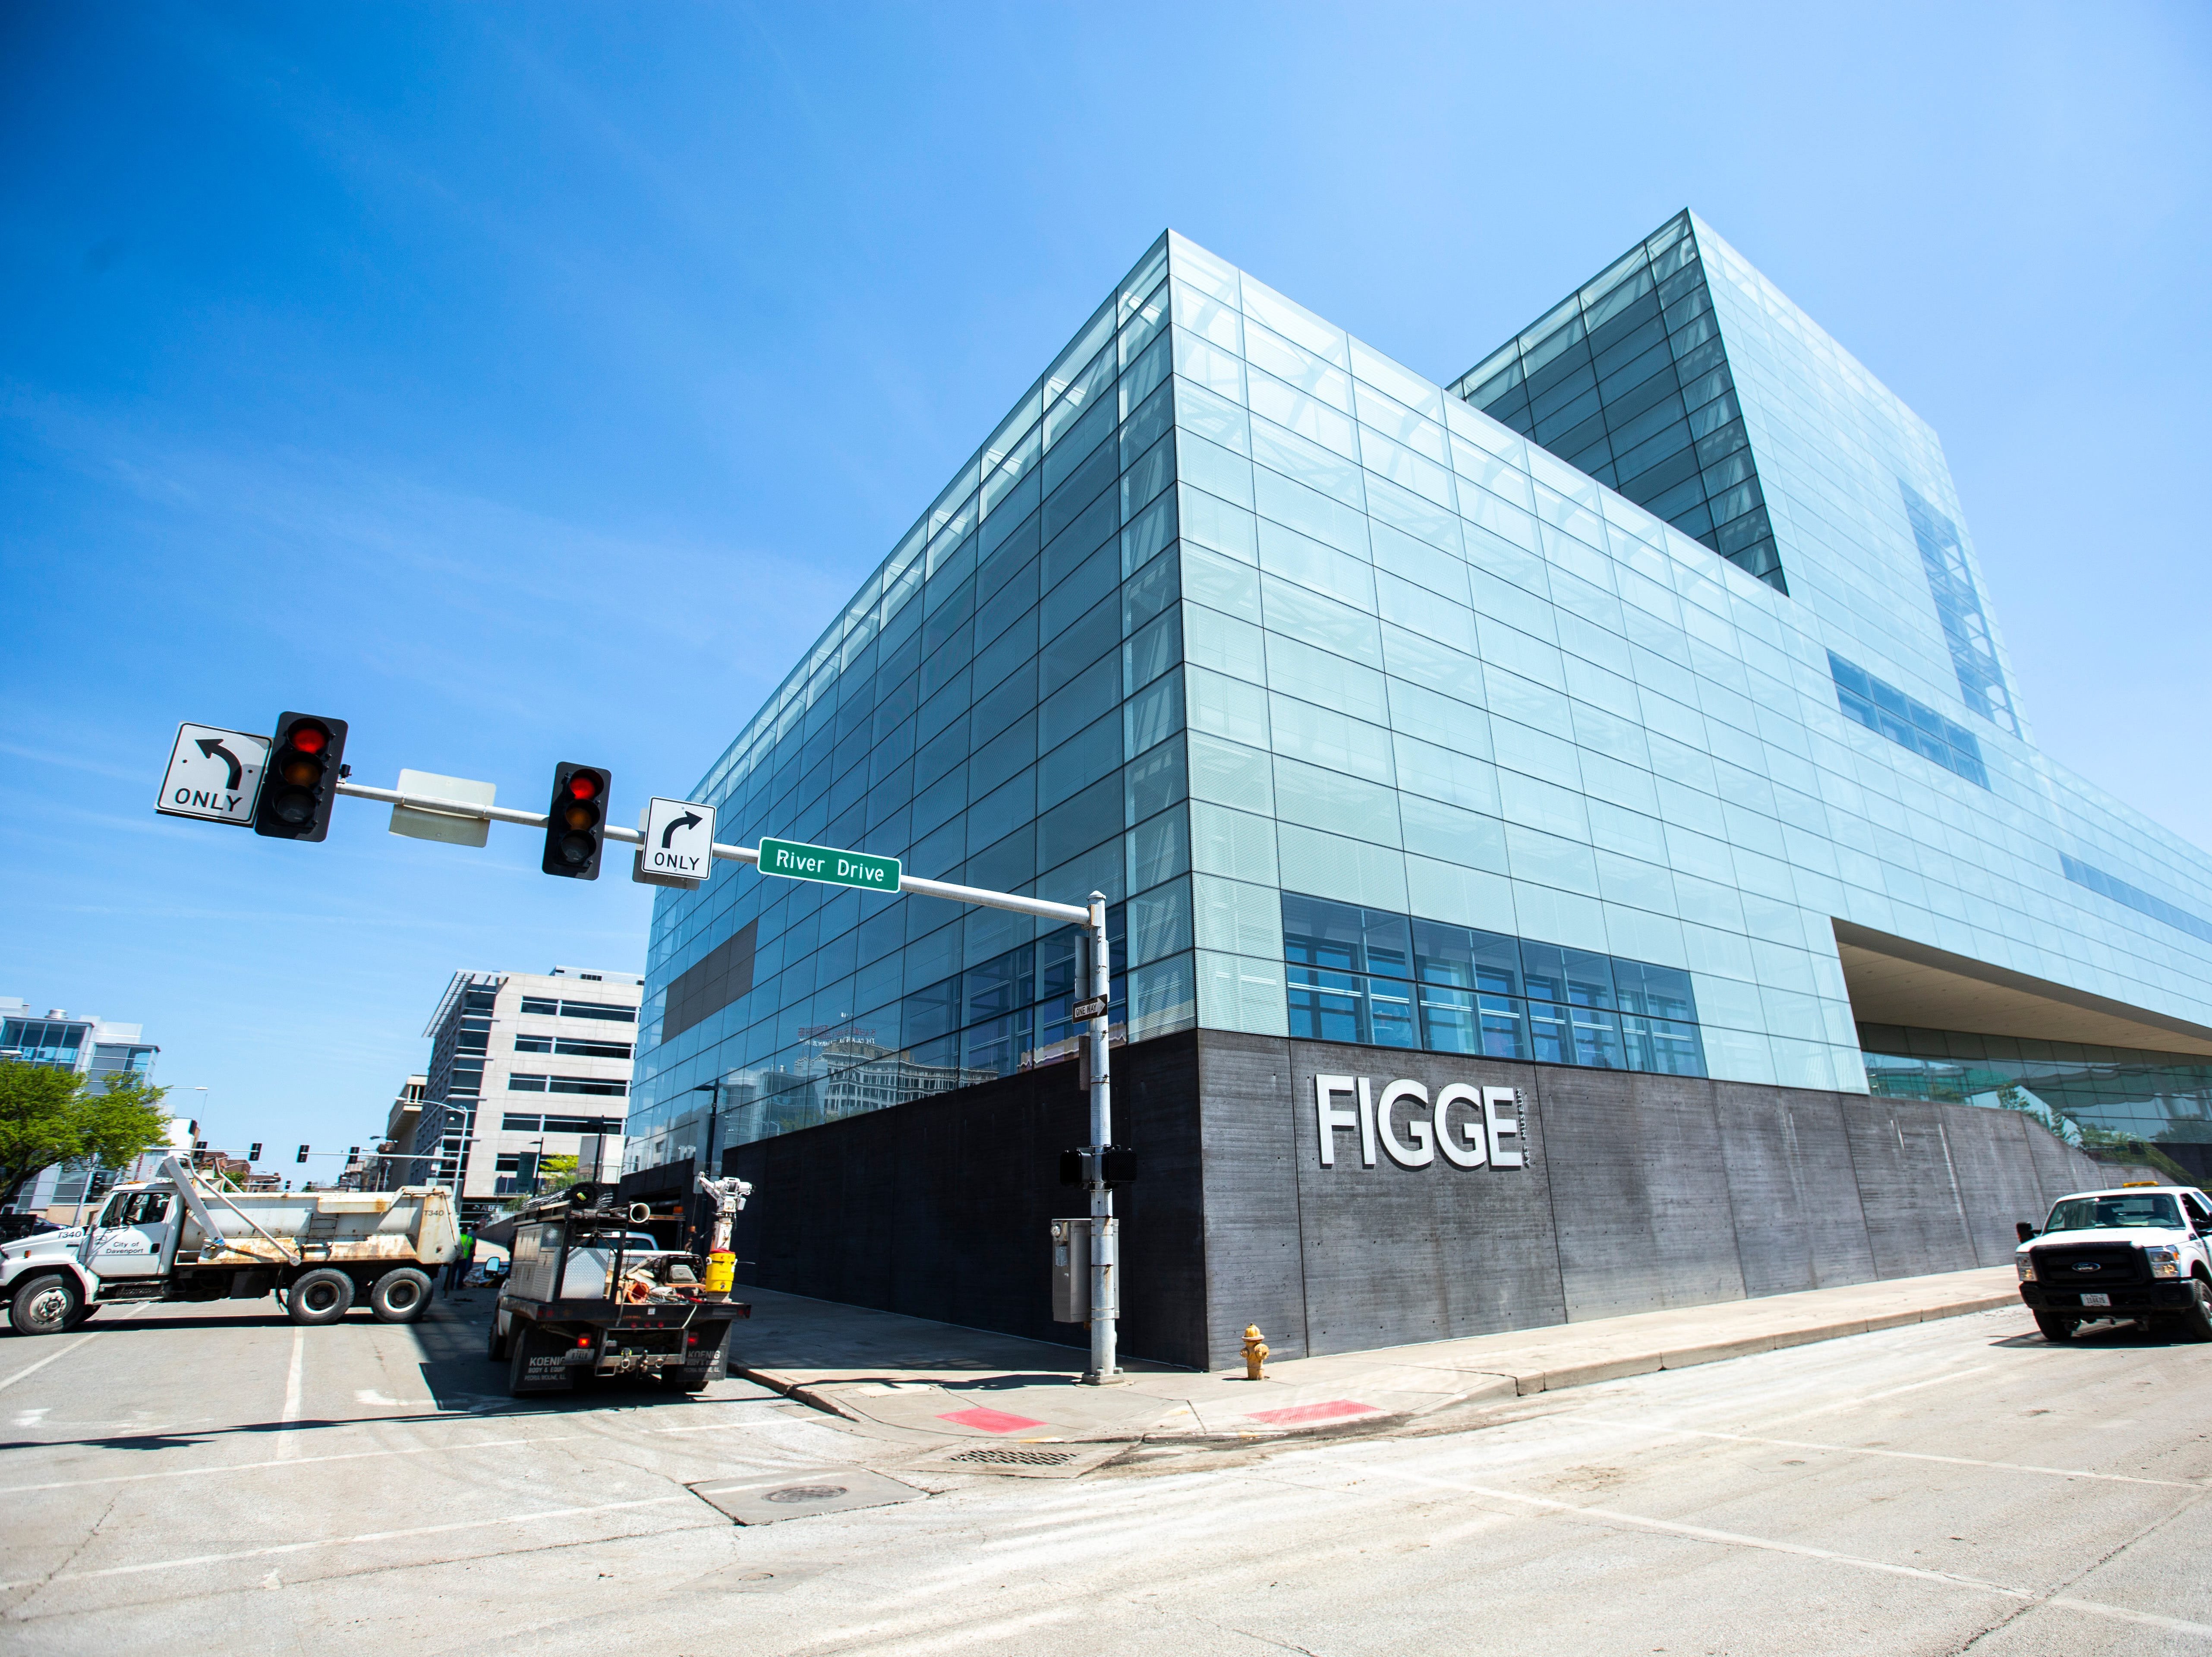 A City of Davenport vehicle drives past the Figge Art Museum as cleanup begins after floodwaters receded, Wednesday, May 15, 2019, along River Drive in downtown Davenport, Iowa.